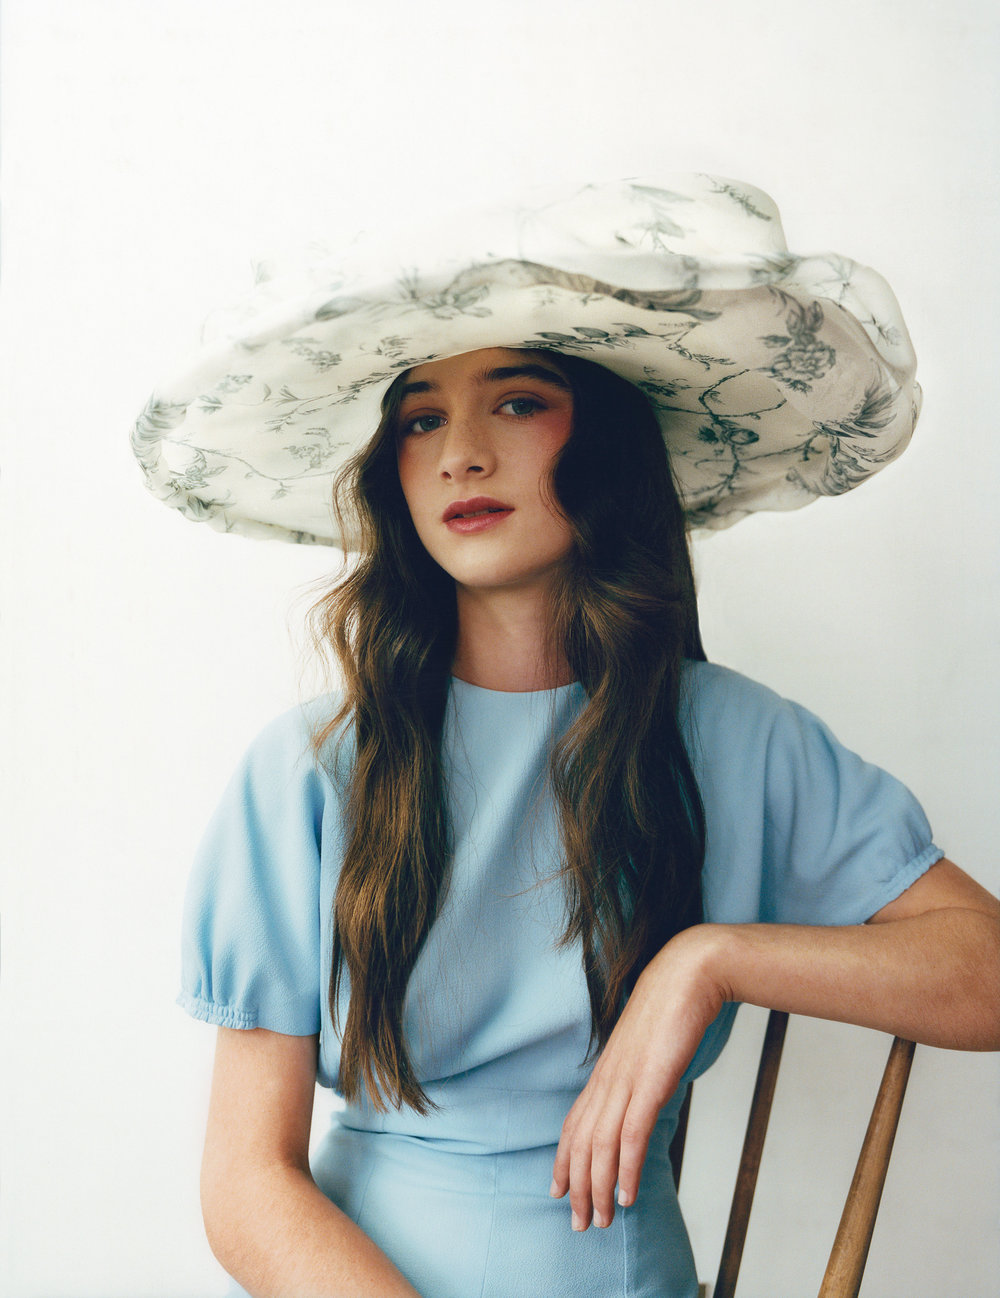 EMILIA WICKSTEAD  jumpsuit and  NOEL STEWART FOR MULBERRY  hat.